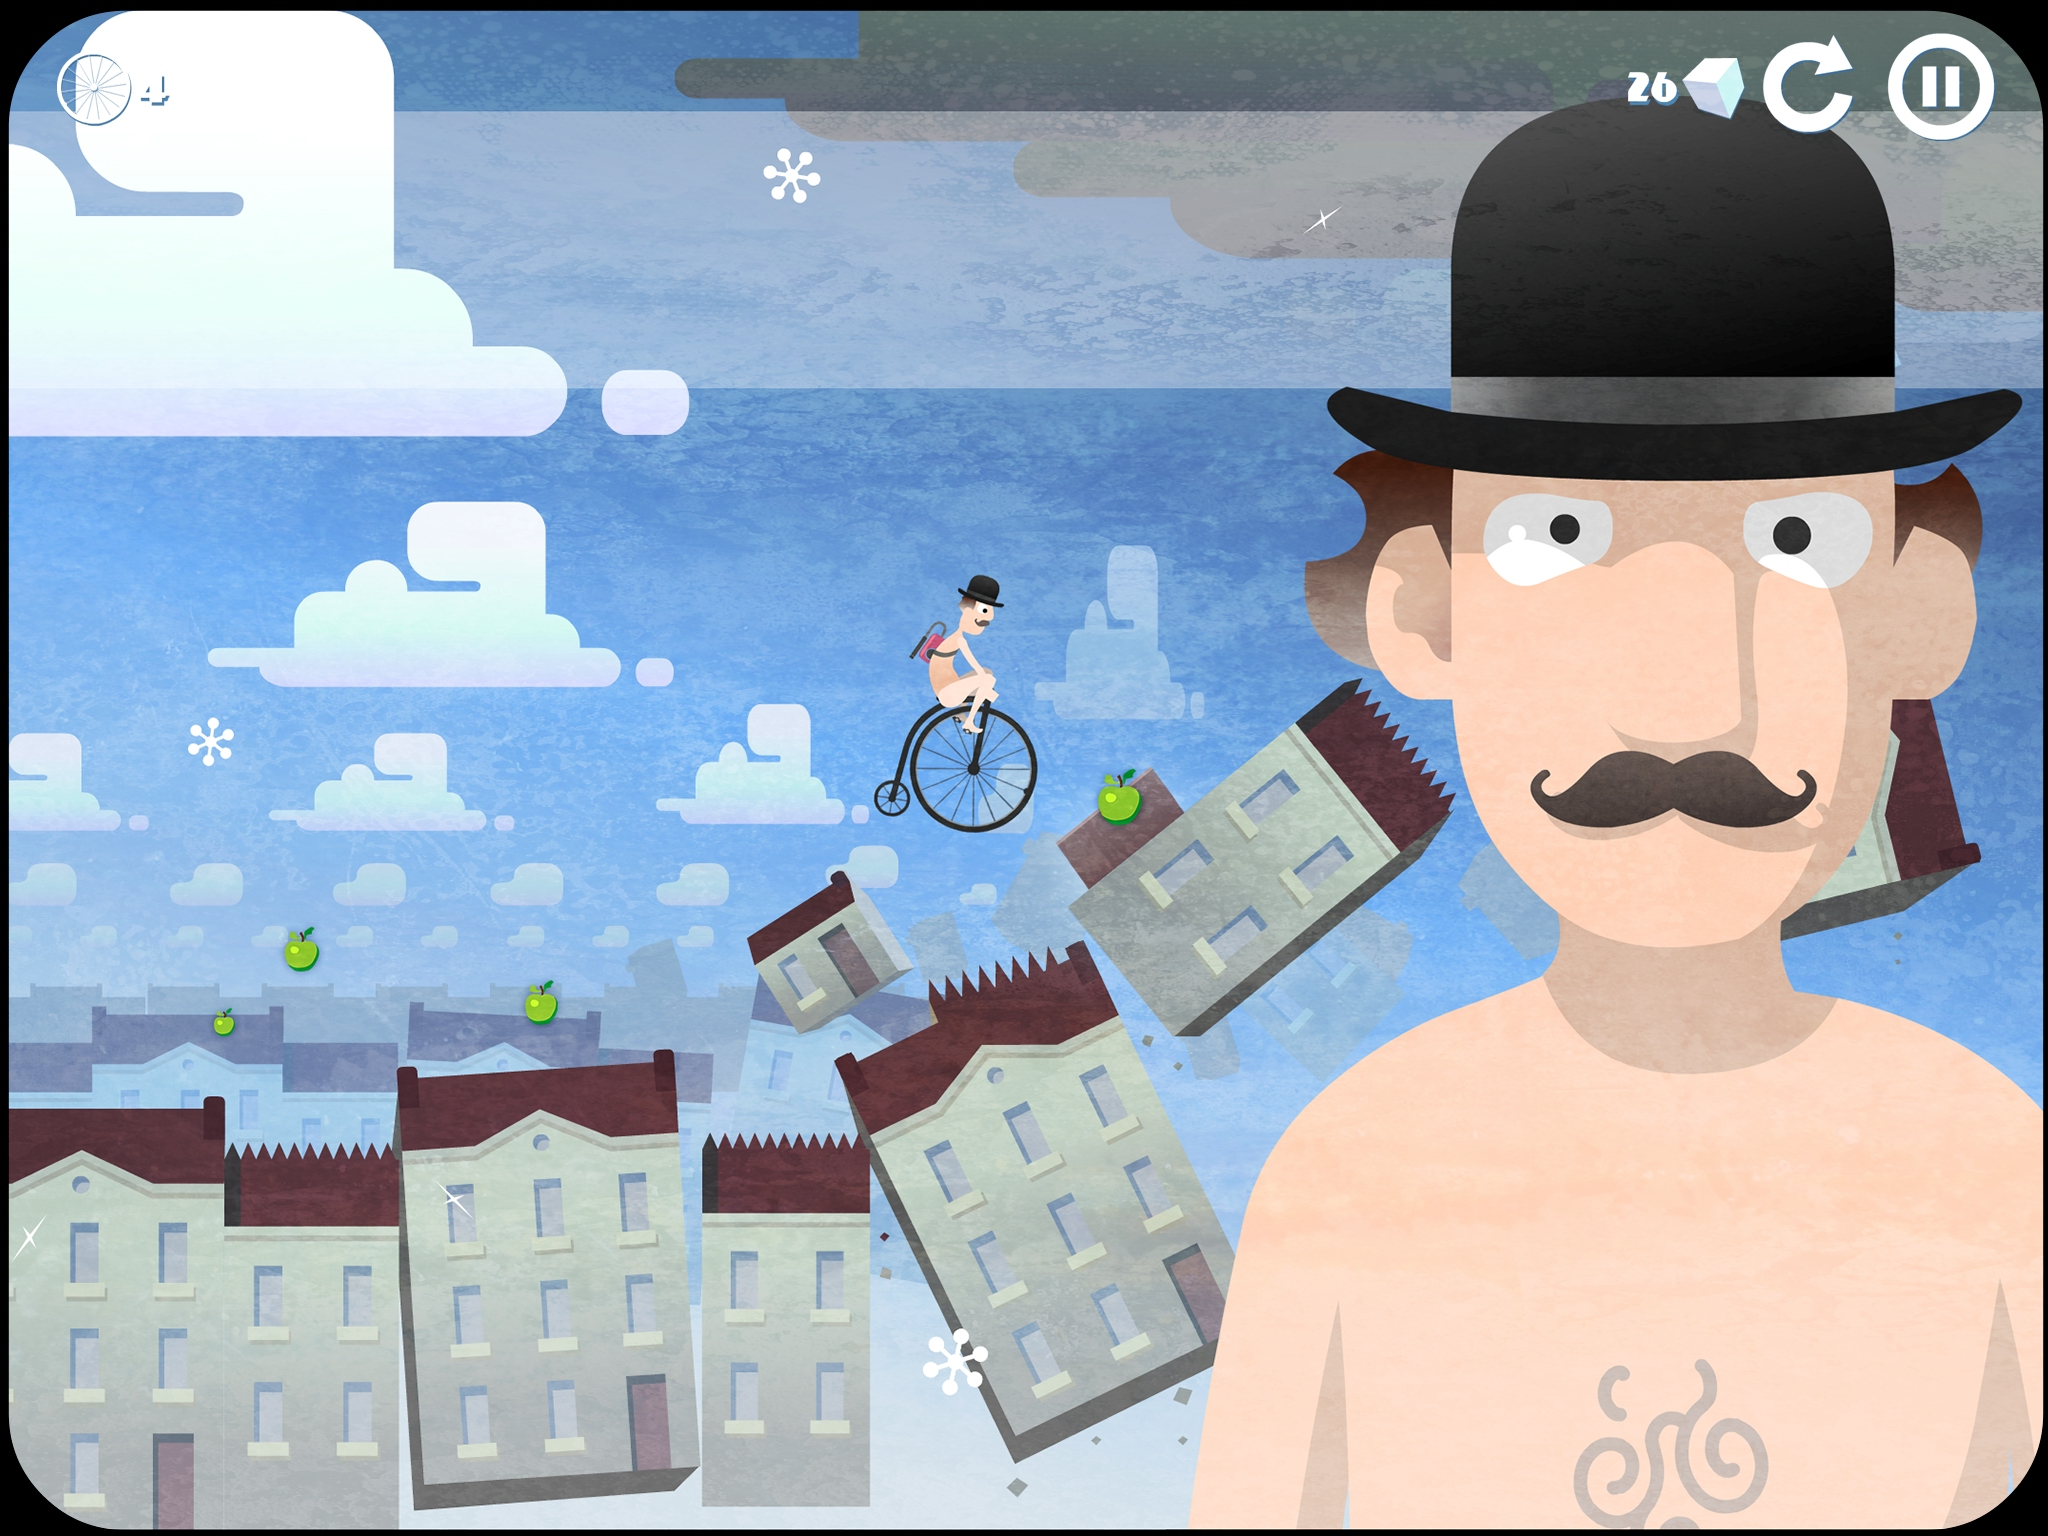 Out now - Arty platformer Icycle: On Thin Ice is a surreal bike ride through your own subconscious